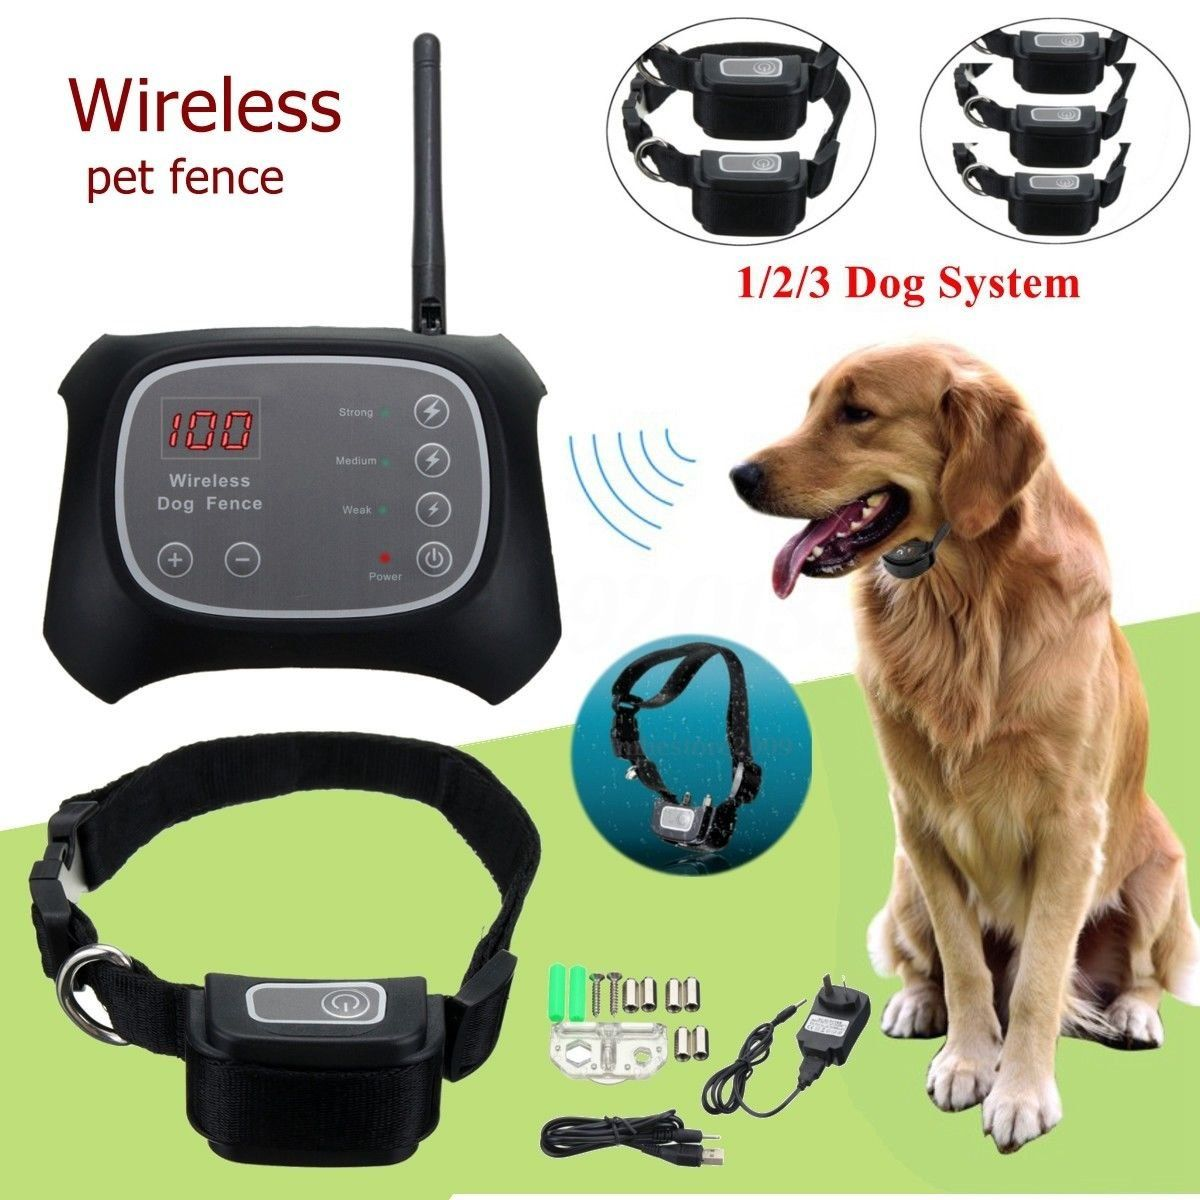 Tdc Wireless Electric Pet Dog Fence Containment System Waterproof